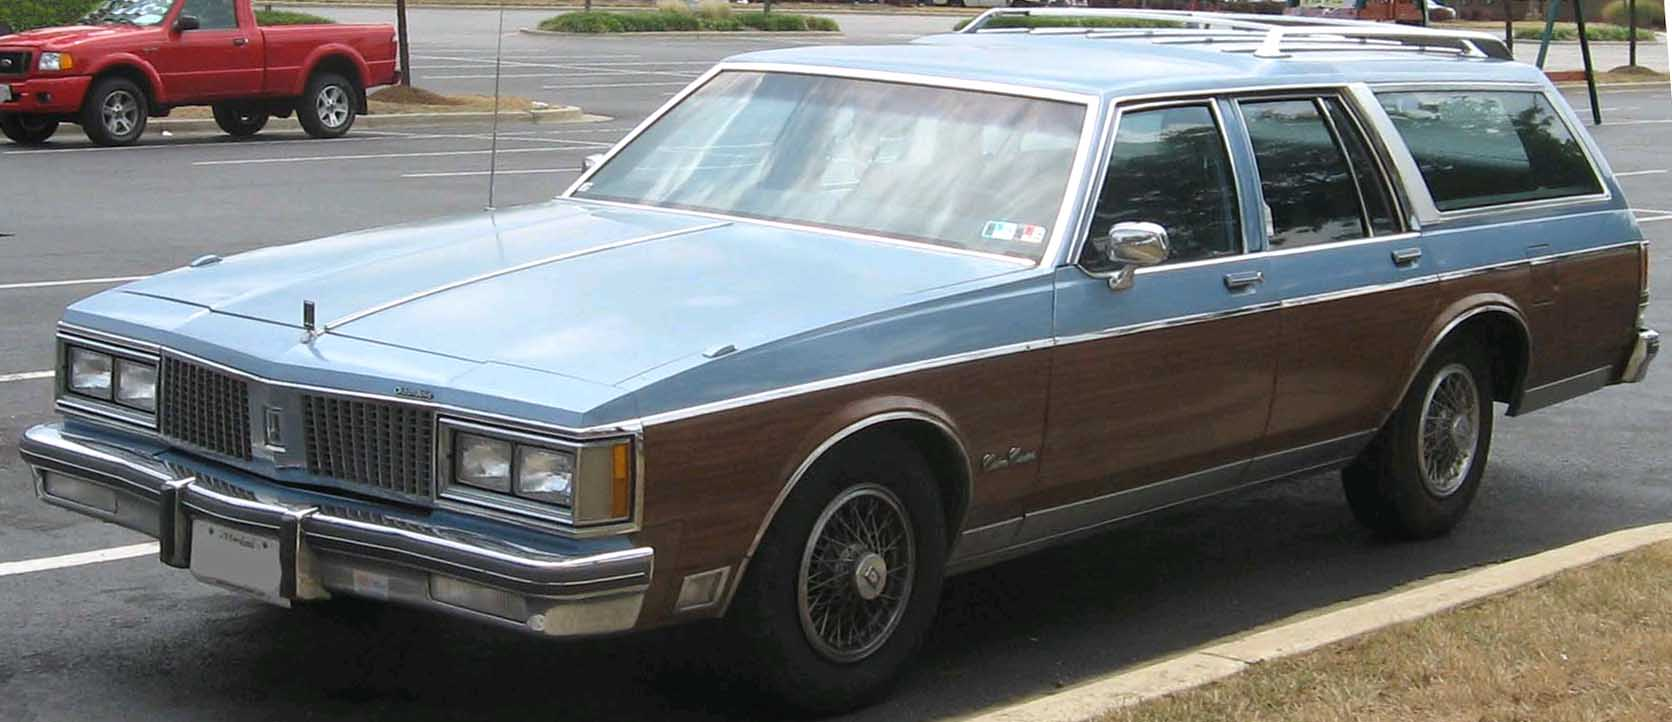 29+ 1981 Oldsmobile Cutlass Station Wagon